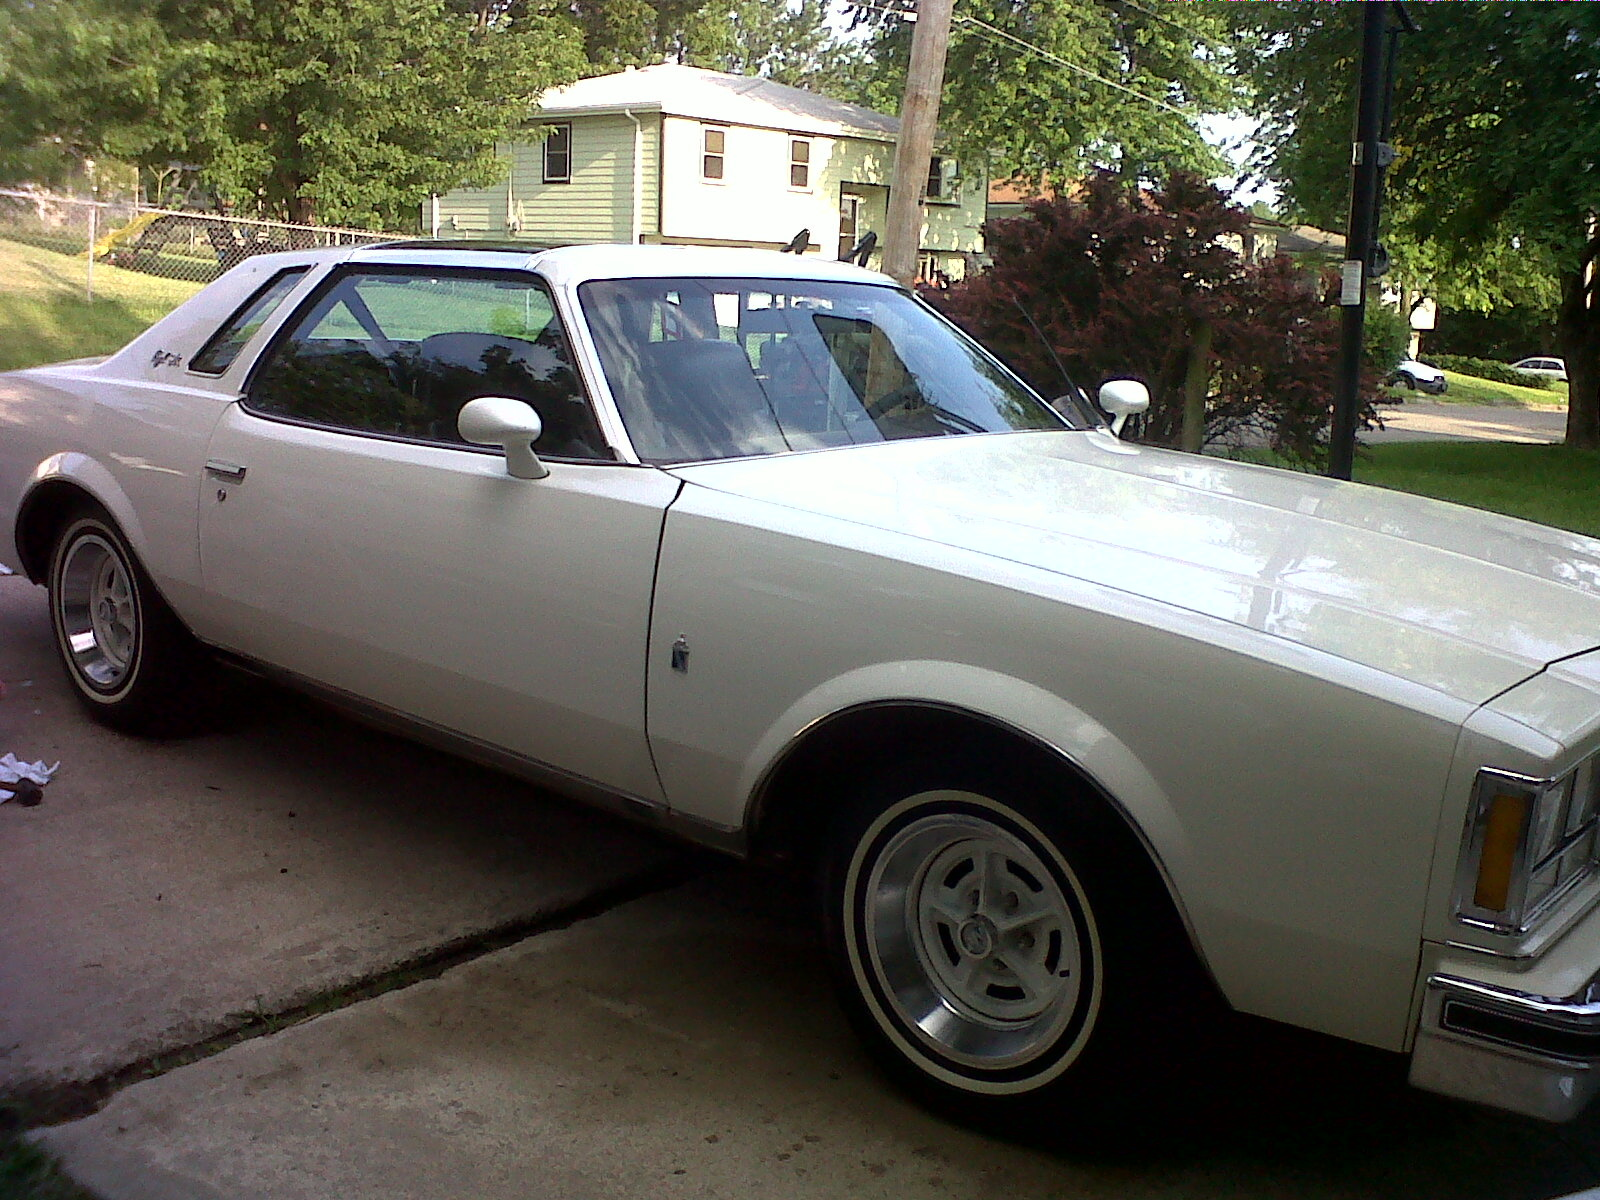 Buick Regal Questions - I have a 1976 Buick Regal SR with the Hurst